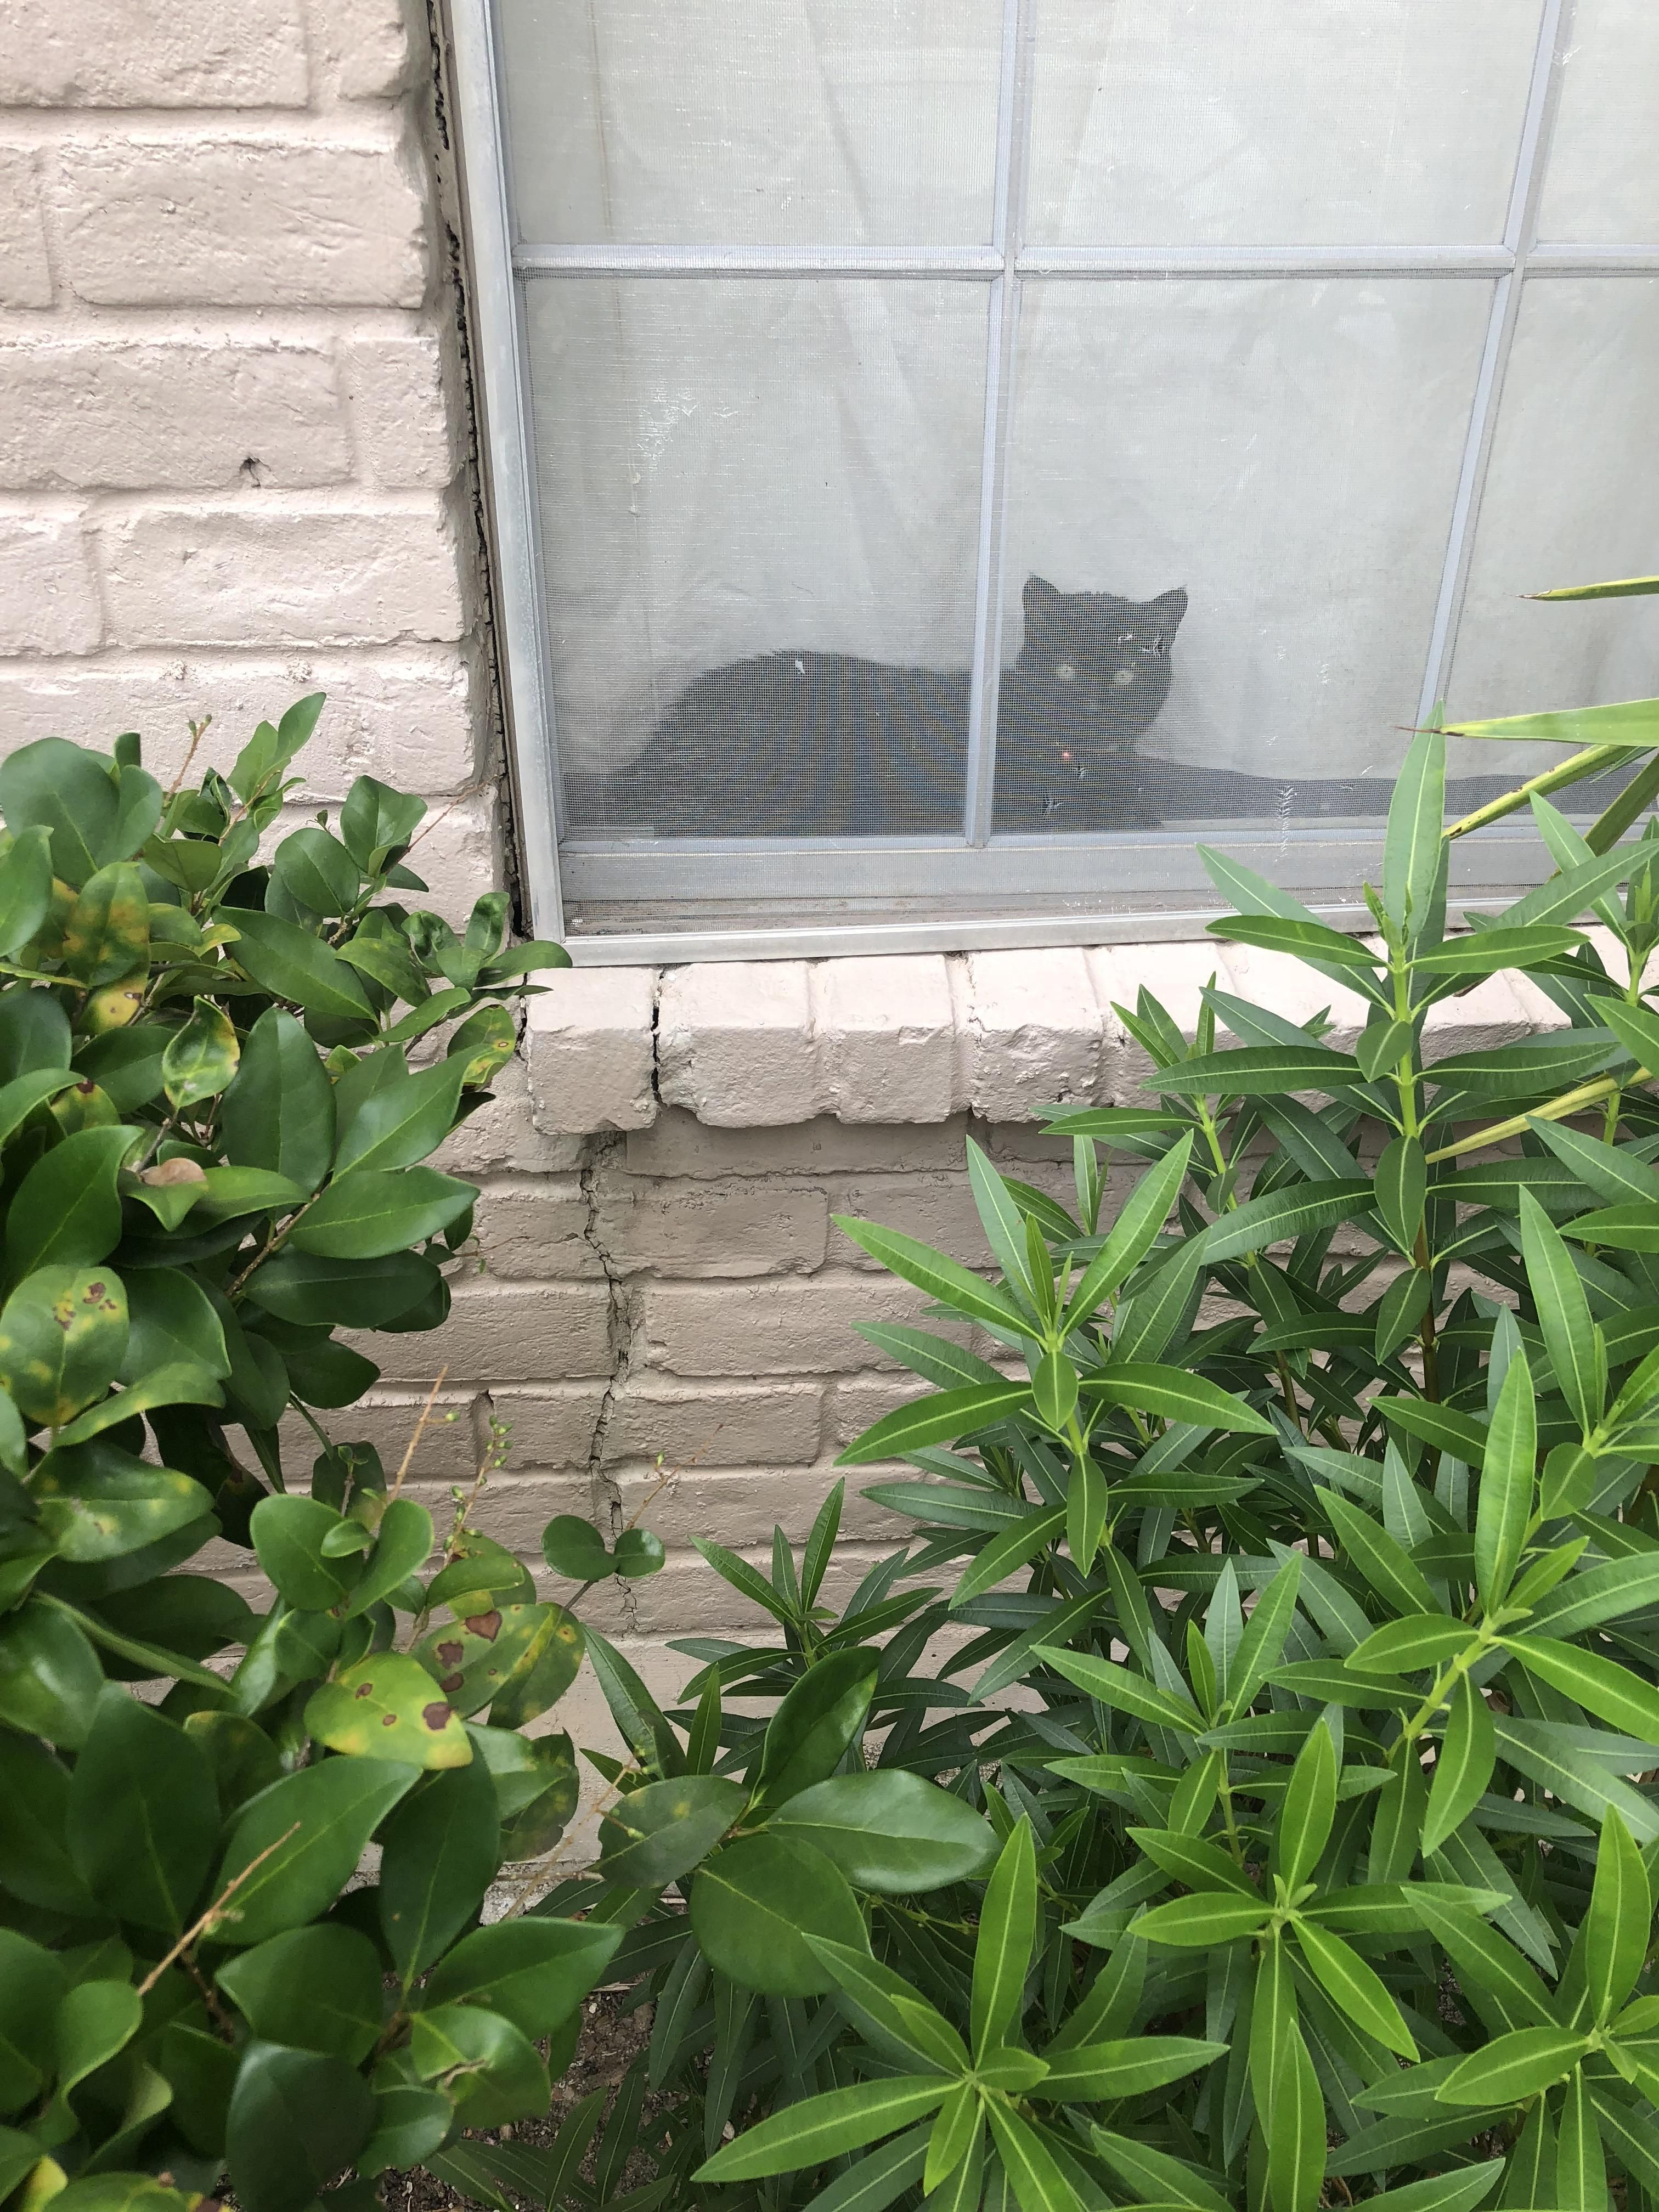 The Smallest Neighborhood Watch Member